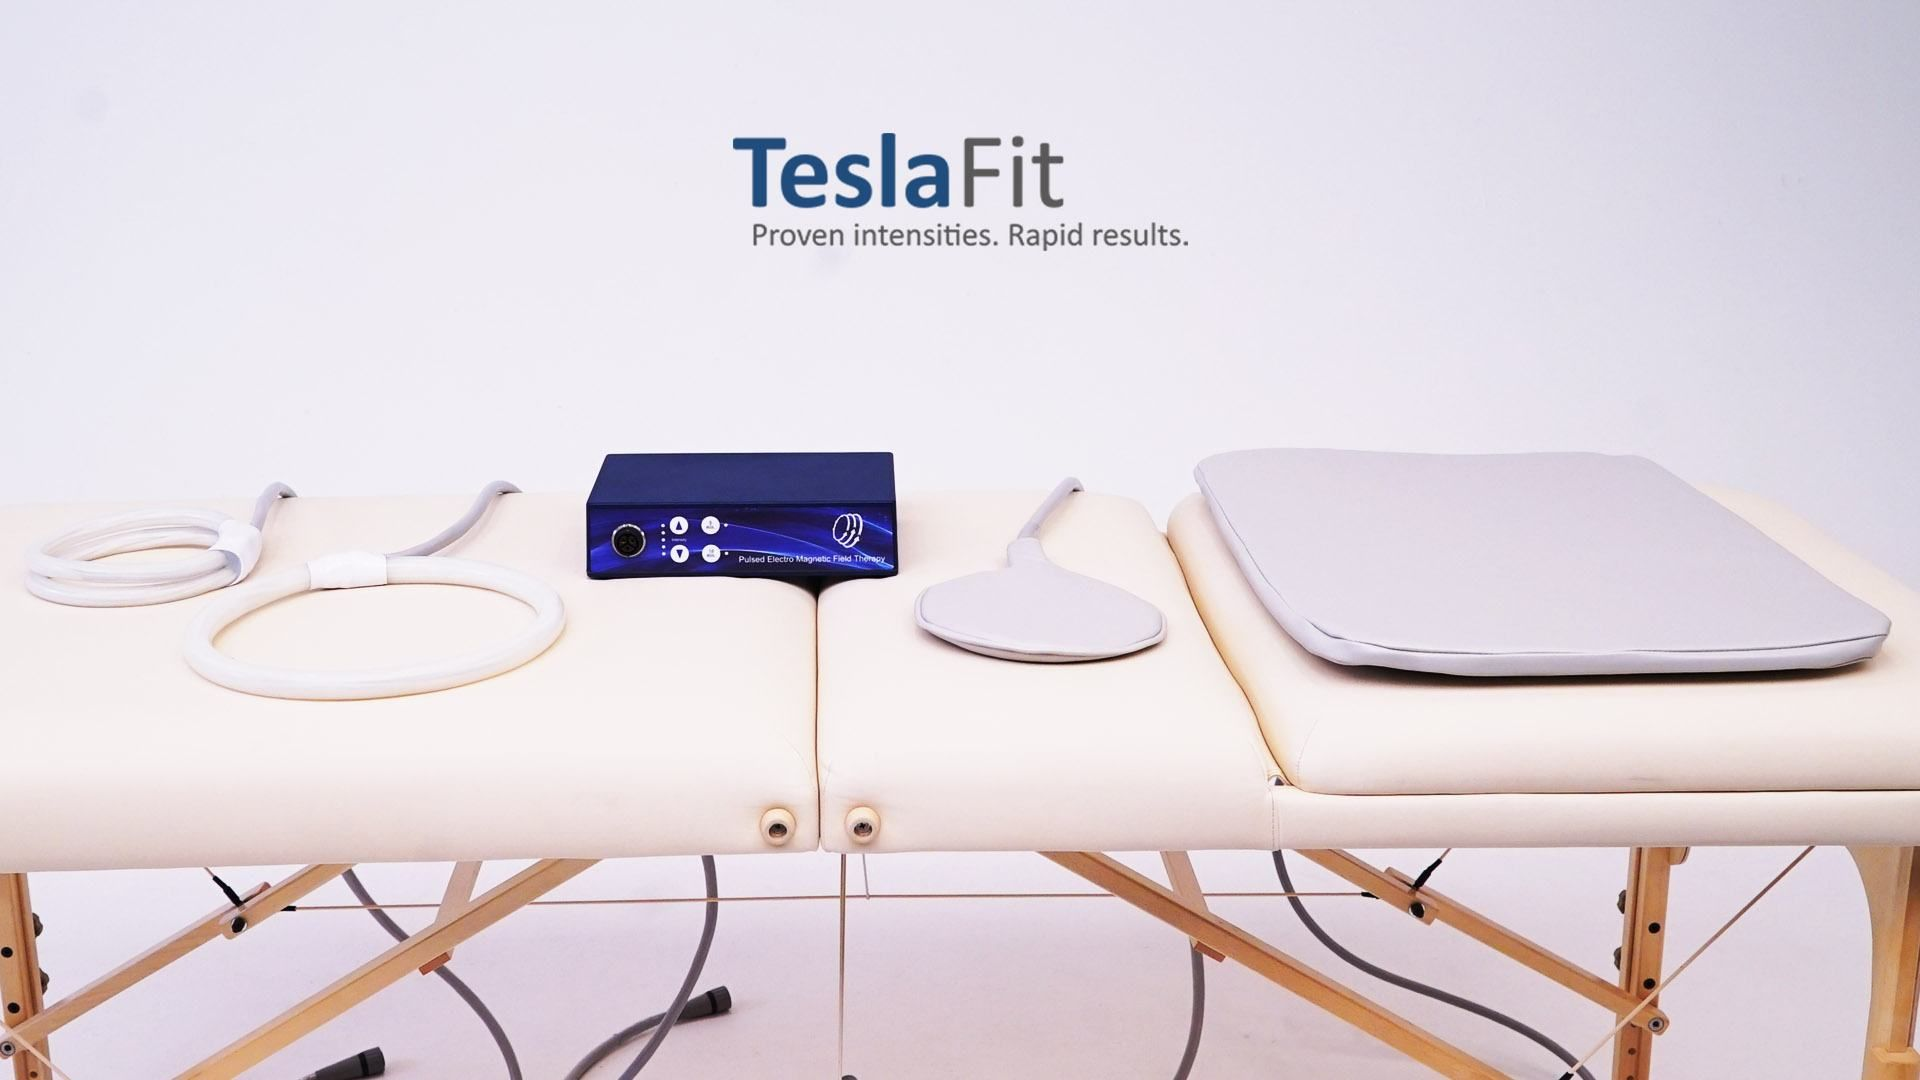 Teslafit Plus Ver 2 Pemf System Reviews Features Pricing Pemf Devices Com In 2020 Pemf Device Pemf Instagram Giveaway